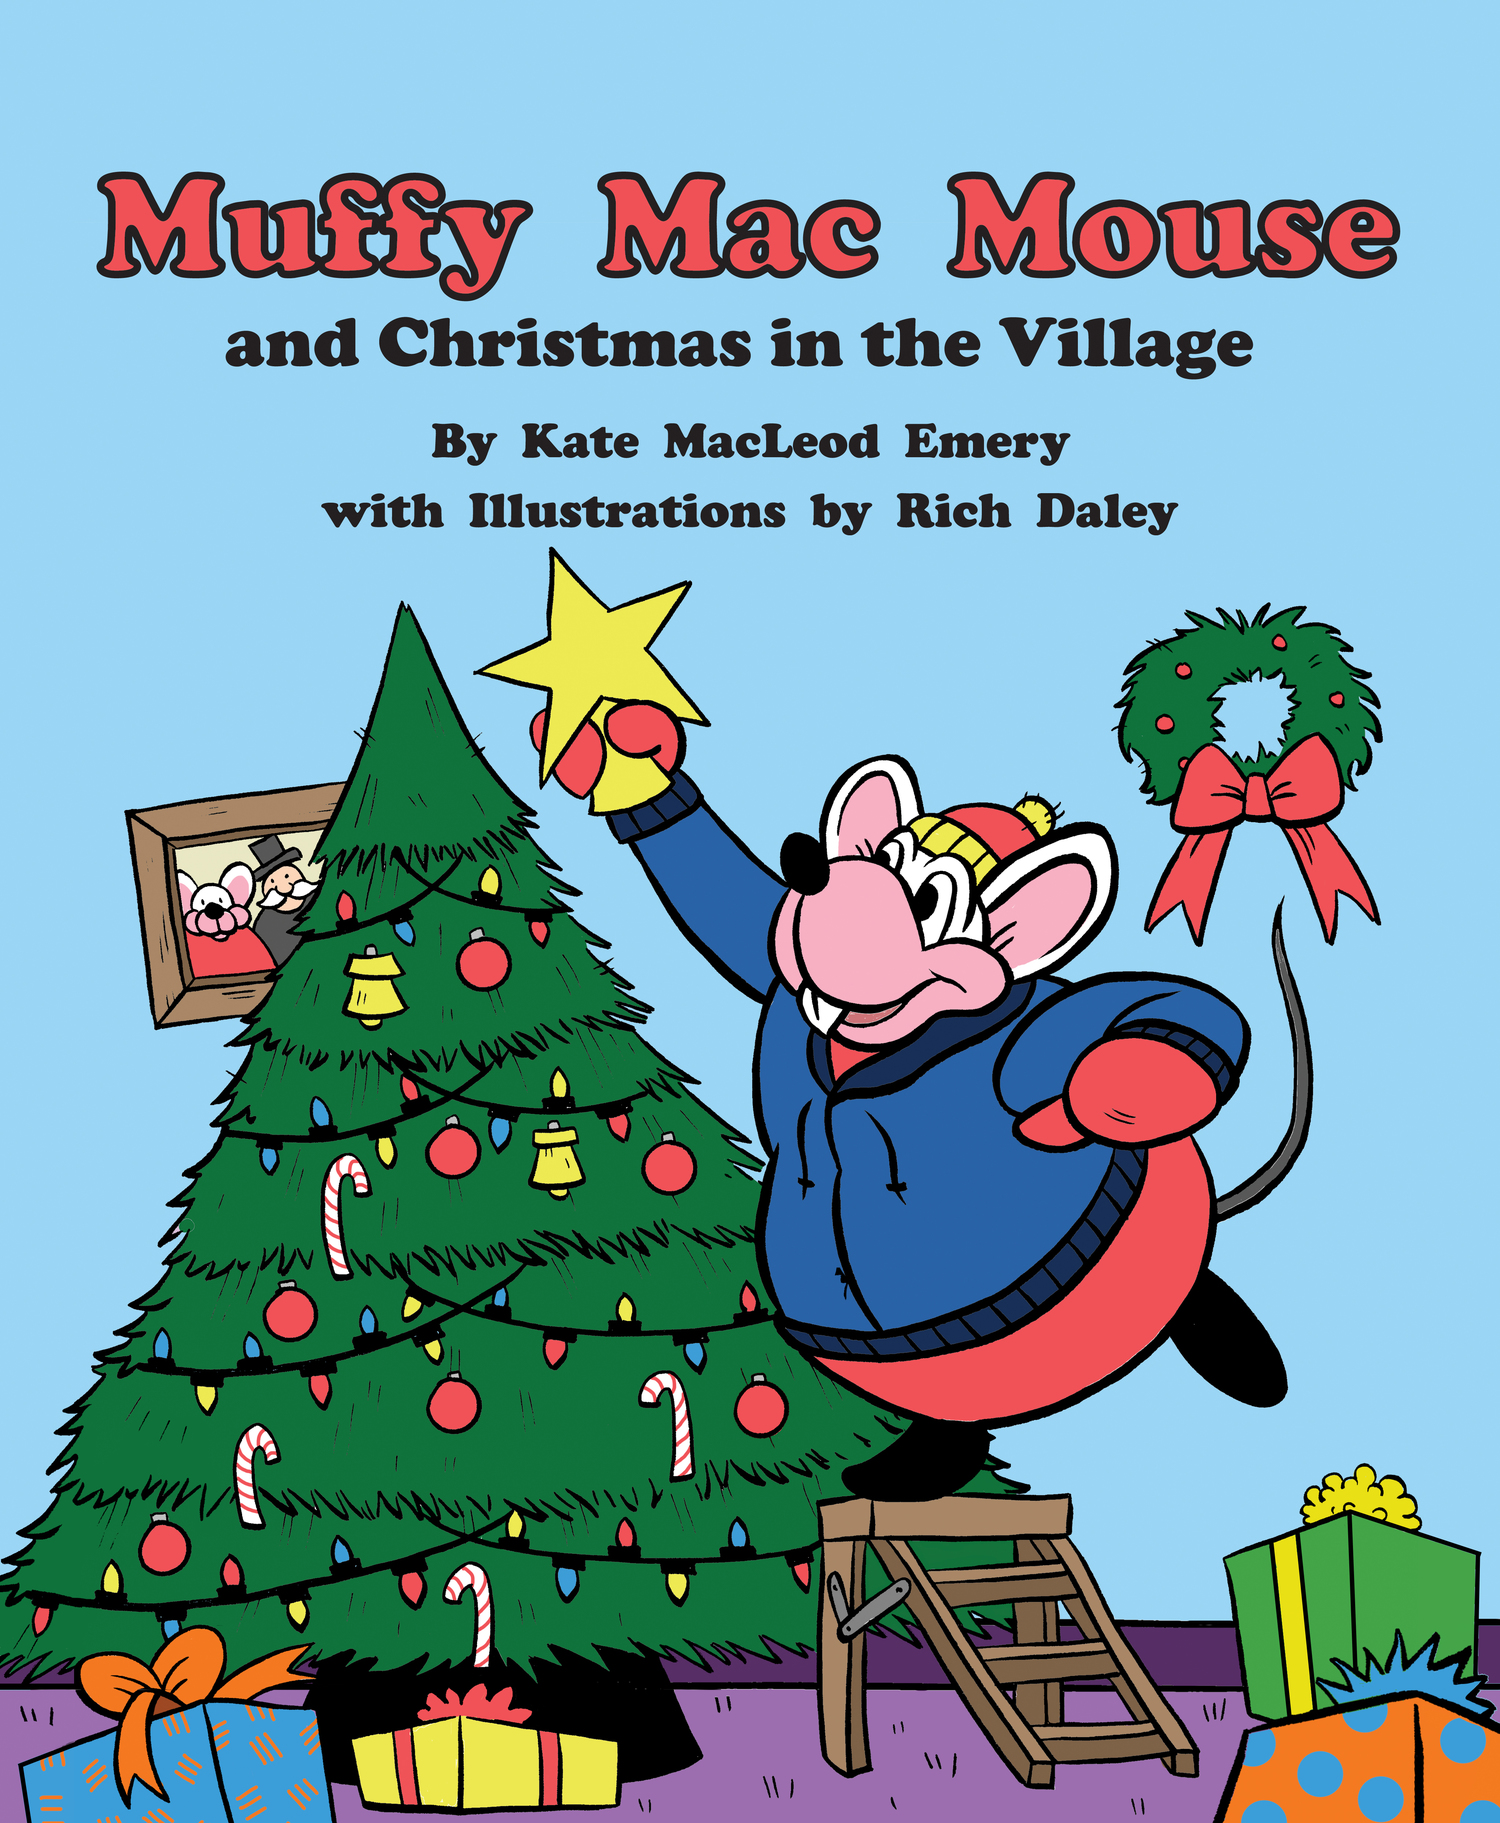 Muffy MacMouse: and Christmas in the Village — Your Site Title